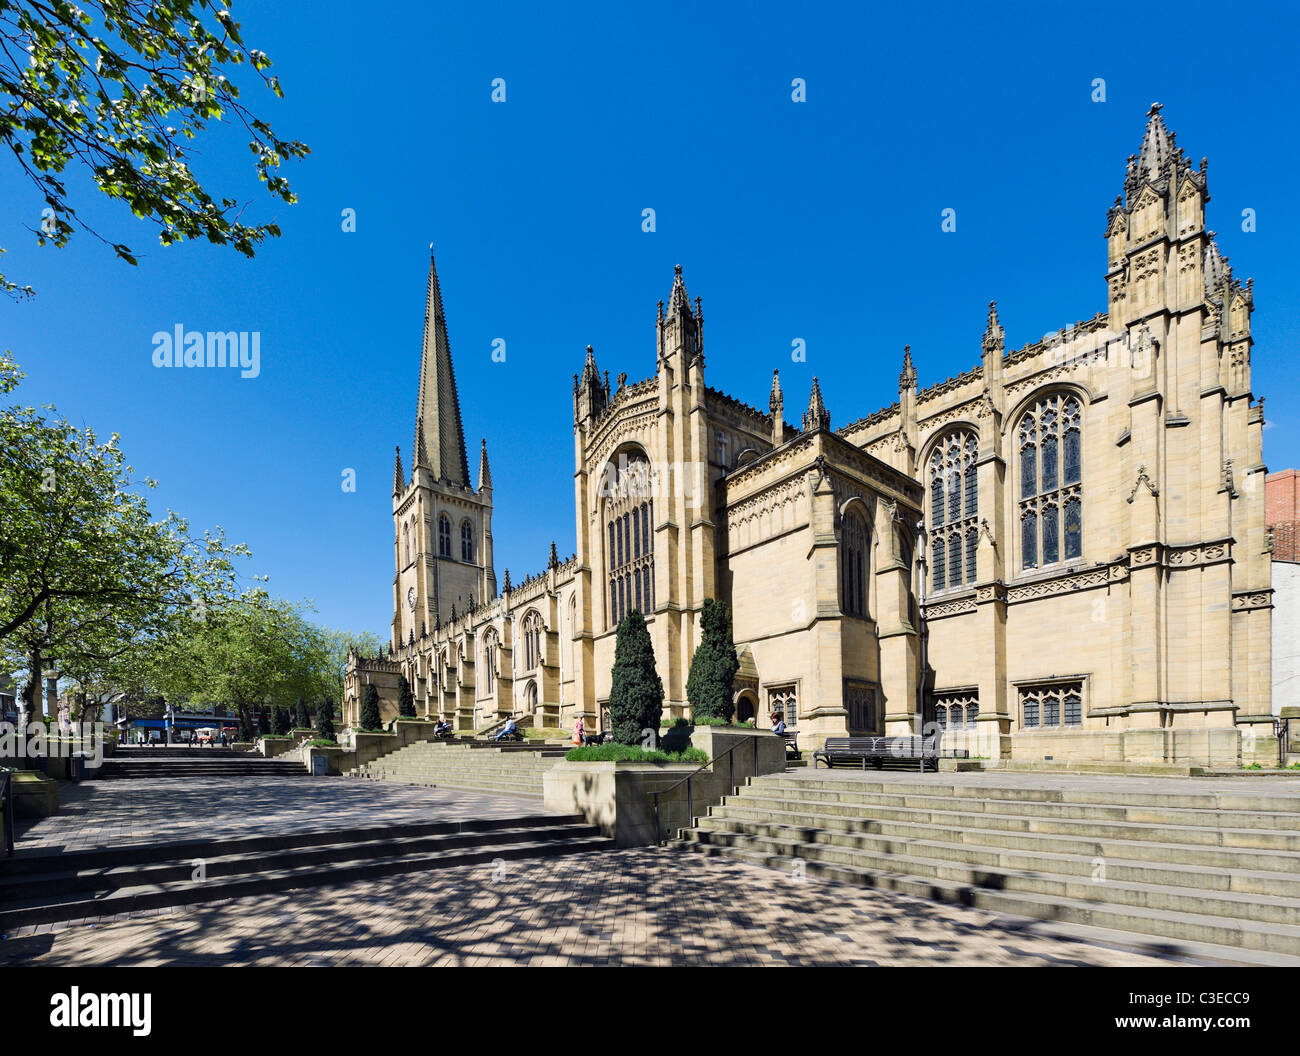 Wakefield Cathedral from Kirkgate, Wakefield, West Yorkshire, UK - Stock Image